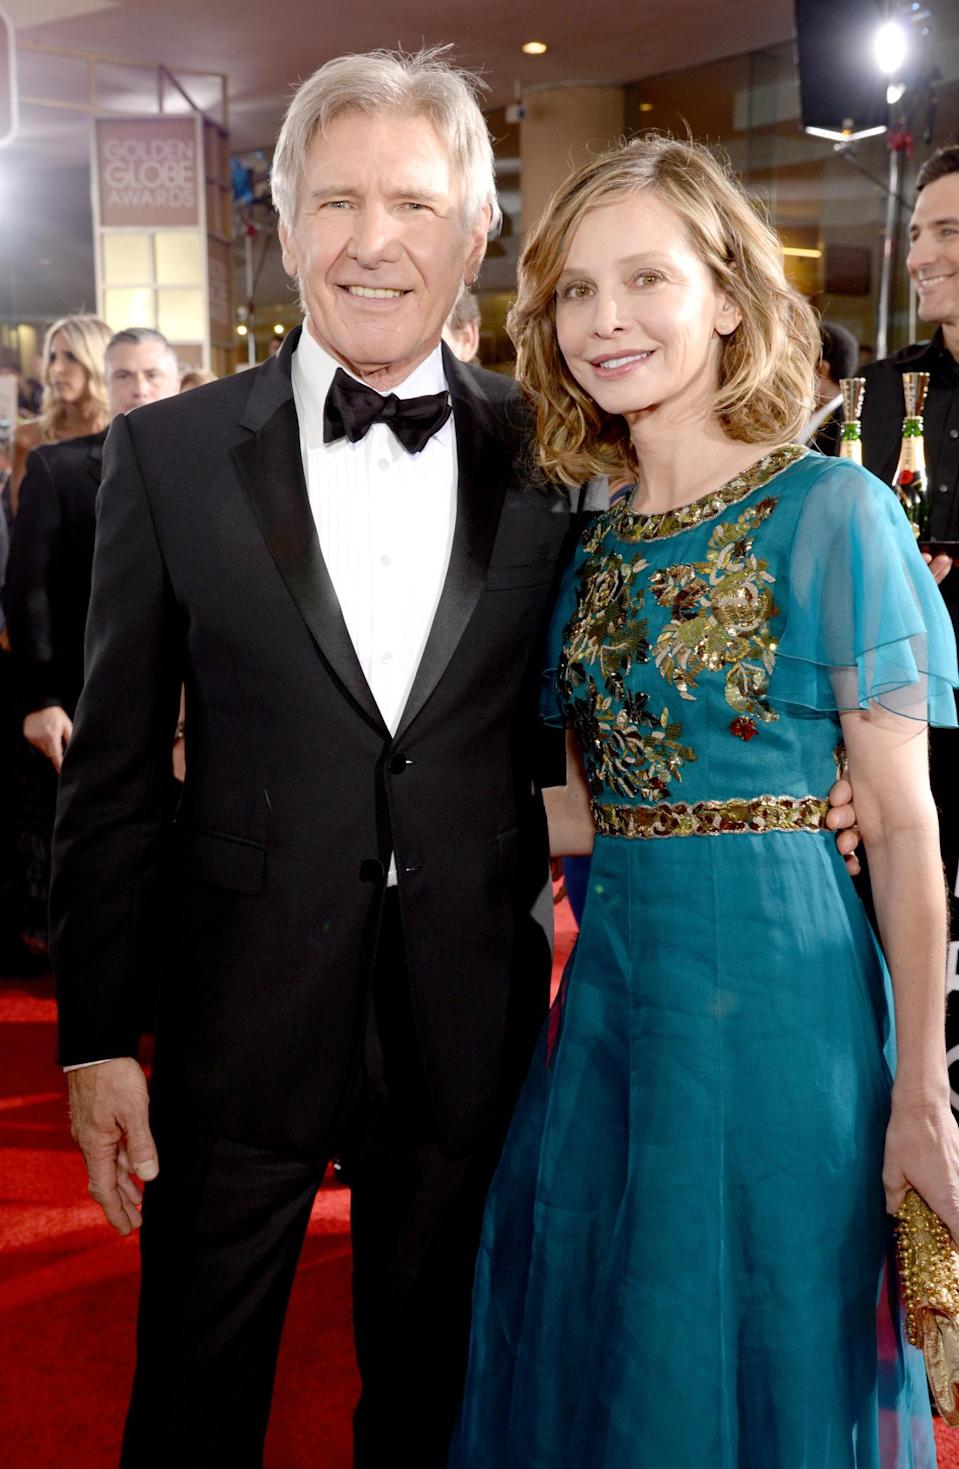 """<p>The couple originally met at the 2002 Golden Globe Awards, so their appearance at this year's event was an anniversary of sorts. They eloped in 2010 with her son Liam in attendance (but not Ford's four children from his previous marriage to late screenwriter Melissa Mathison). Ford gushed to <i>People </i>in 2003 about her support of his hobby; flying: """"Calista loves to fly, and I'm thrilled because it's so important to me and it's the kind of thing that's so much more fun with somebody who really enjoys it."""" It turns out, however, that flying may be a bigger issue for the couple than their 22-year age difference. Ford has had three plane crashes during their 14 years together. <i>(Photo: Getty Images)</i></p><p><i><br></i></p>"""